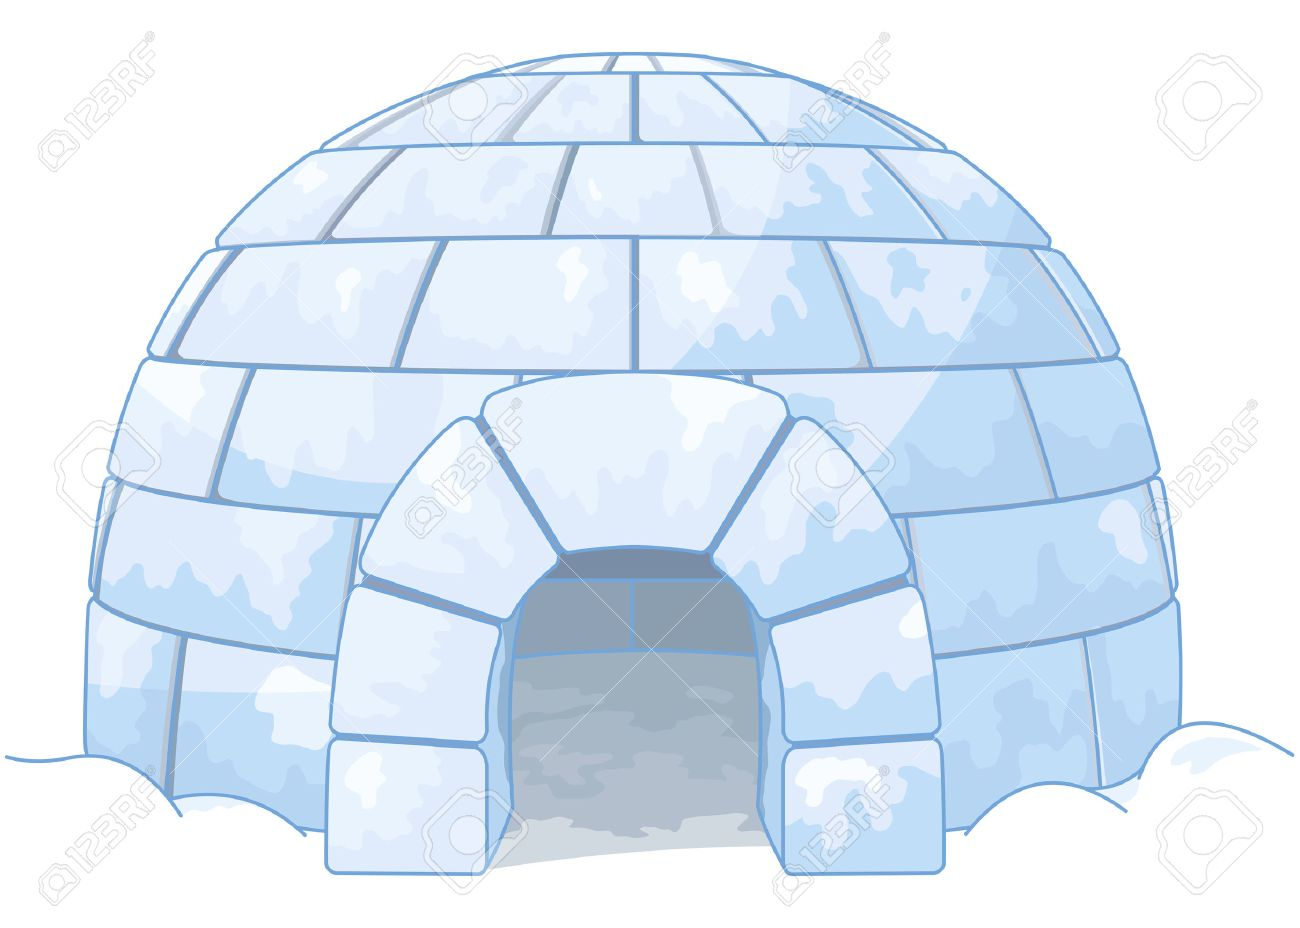 hight resolution of illustration of an igloo stock vector 43890771